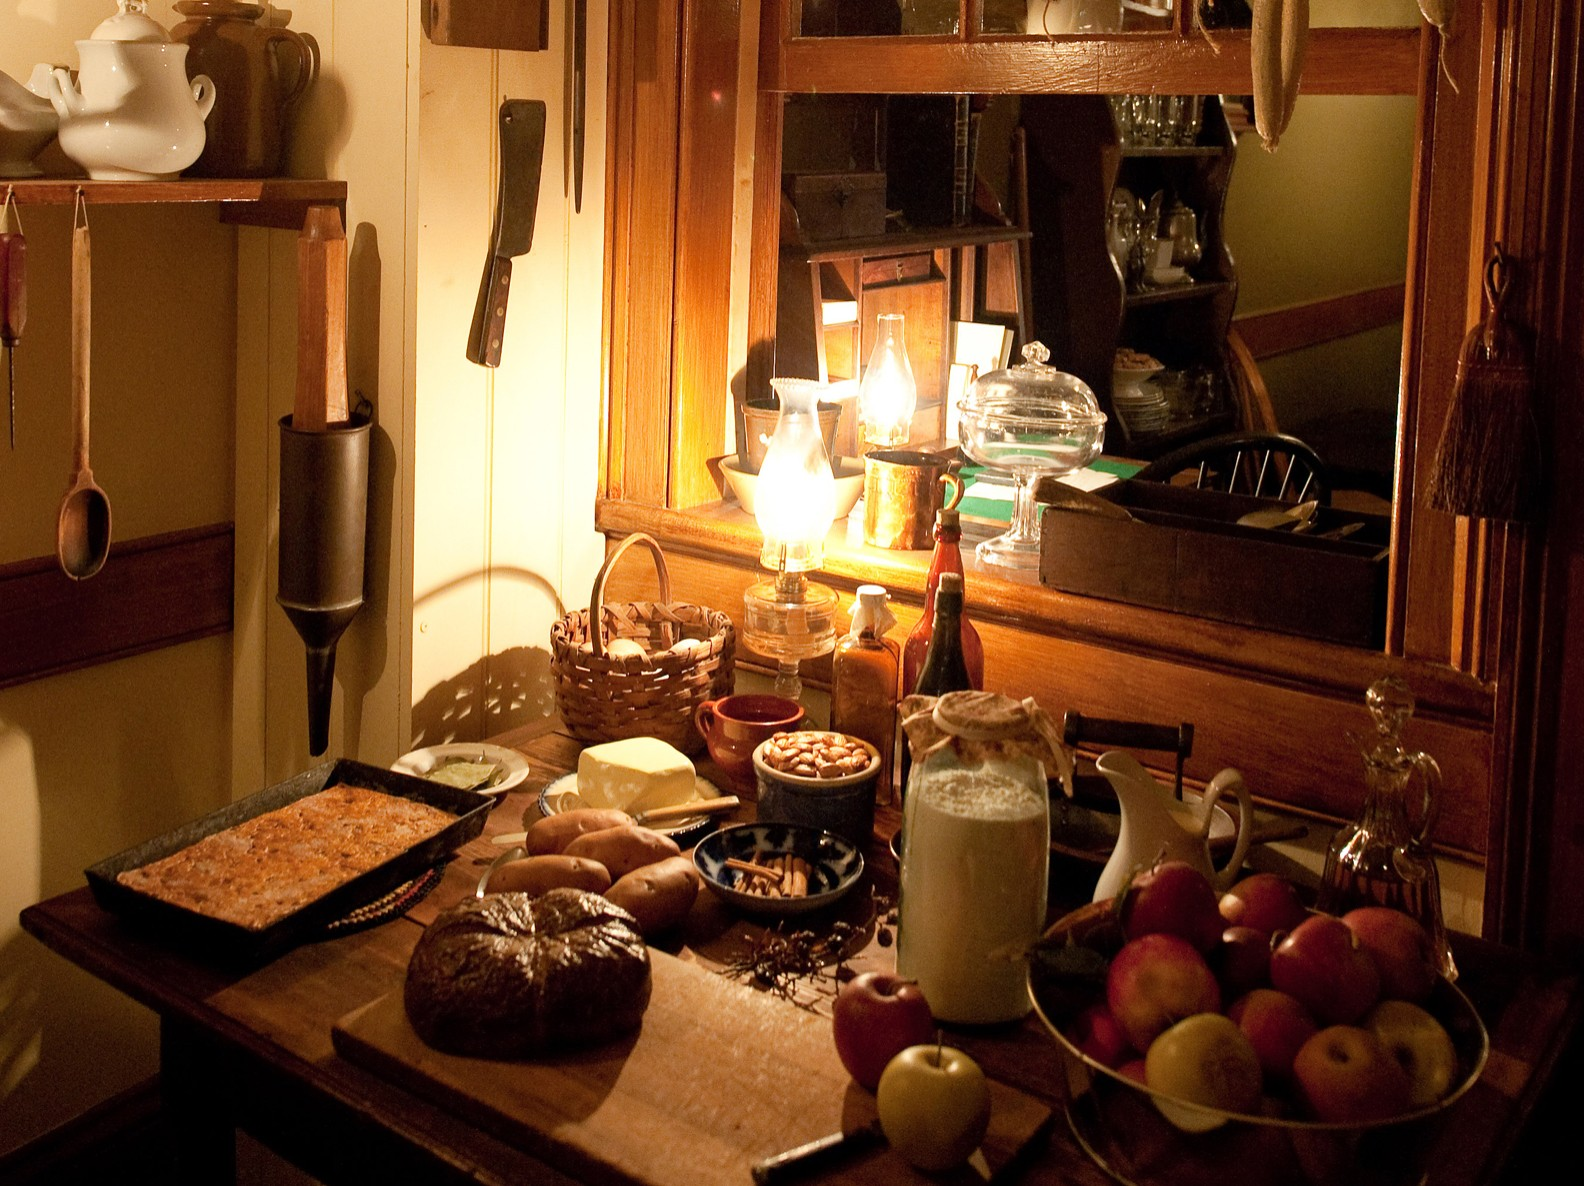 The recreated table of food inside the Schneider saloon in the 1870s